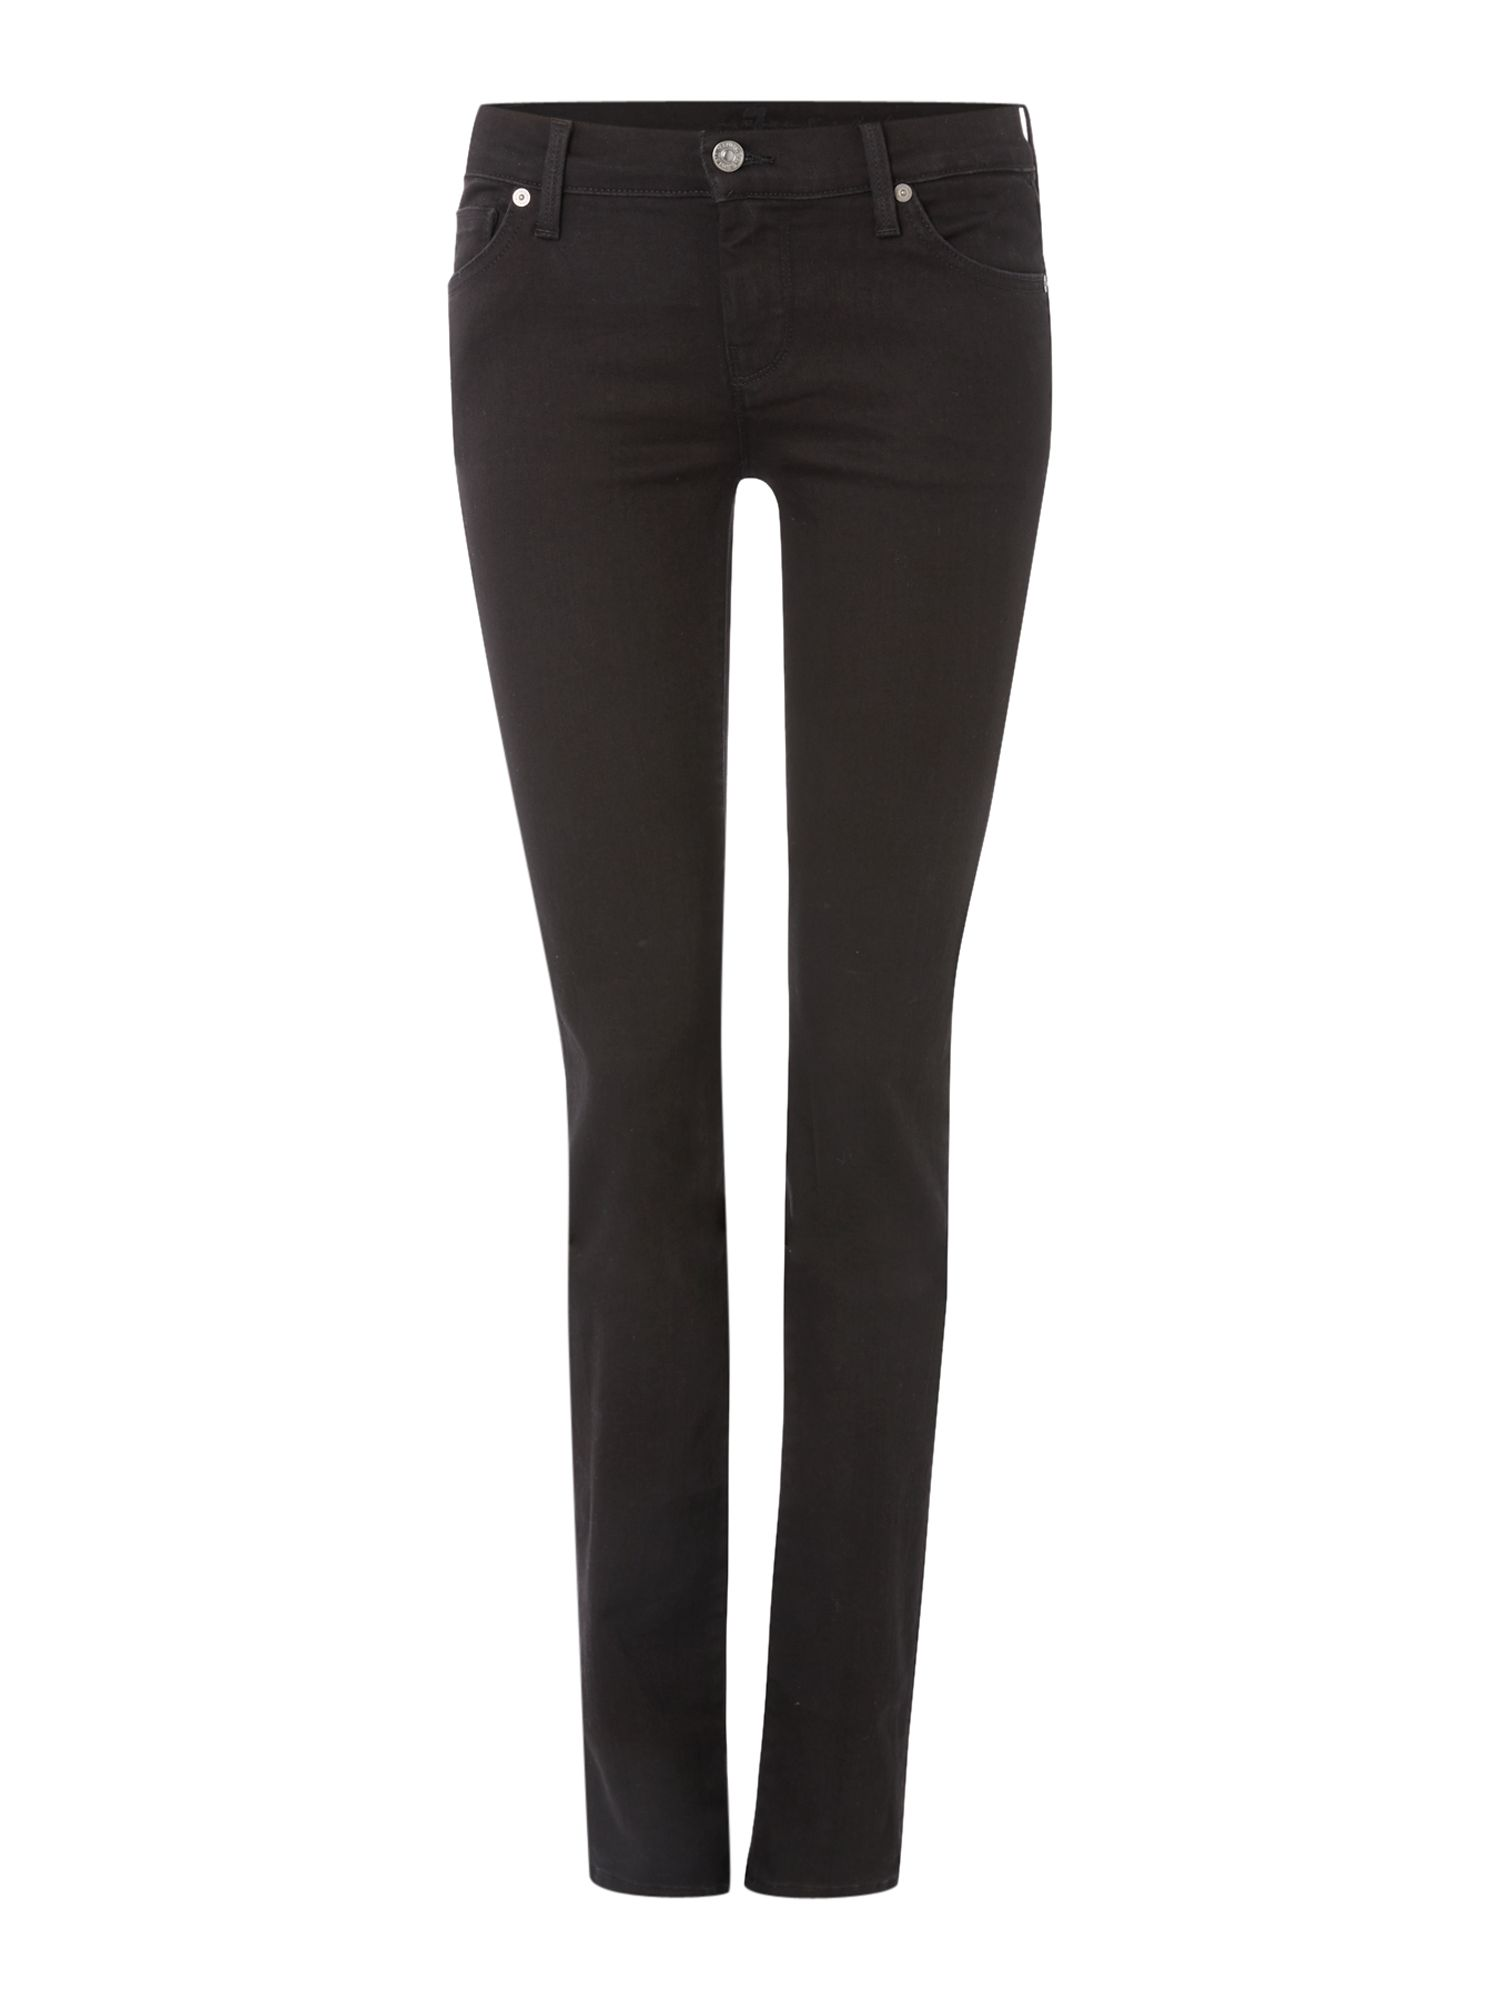 7 For All Mankind 7 For All Mankind Straight leg jeans in Portland Black, Black